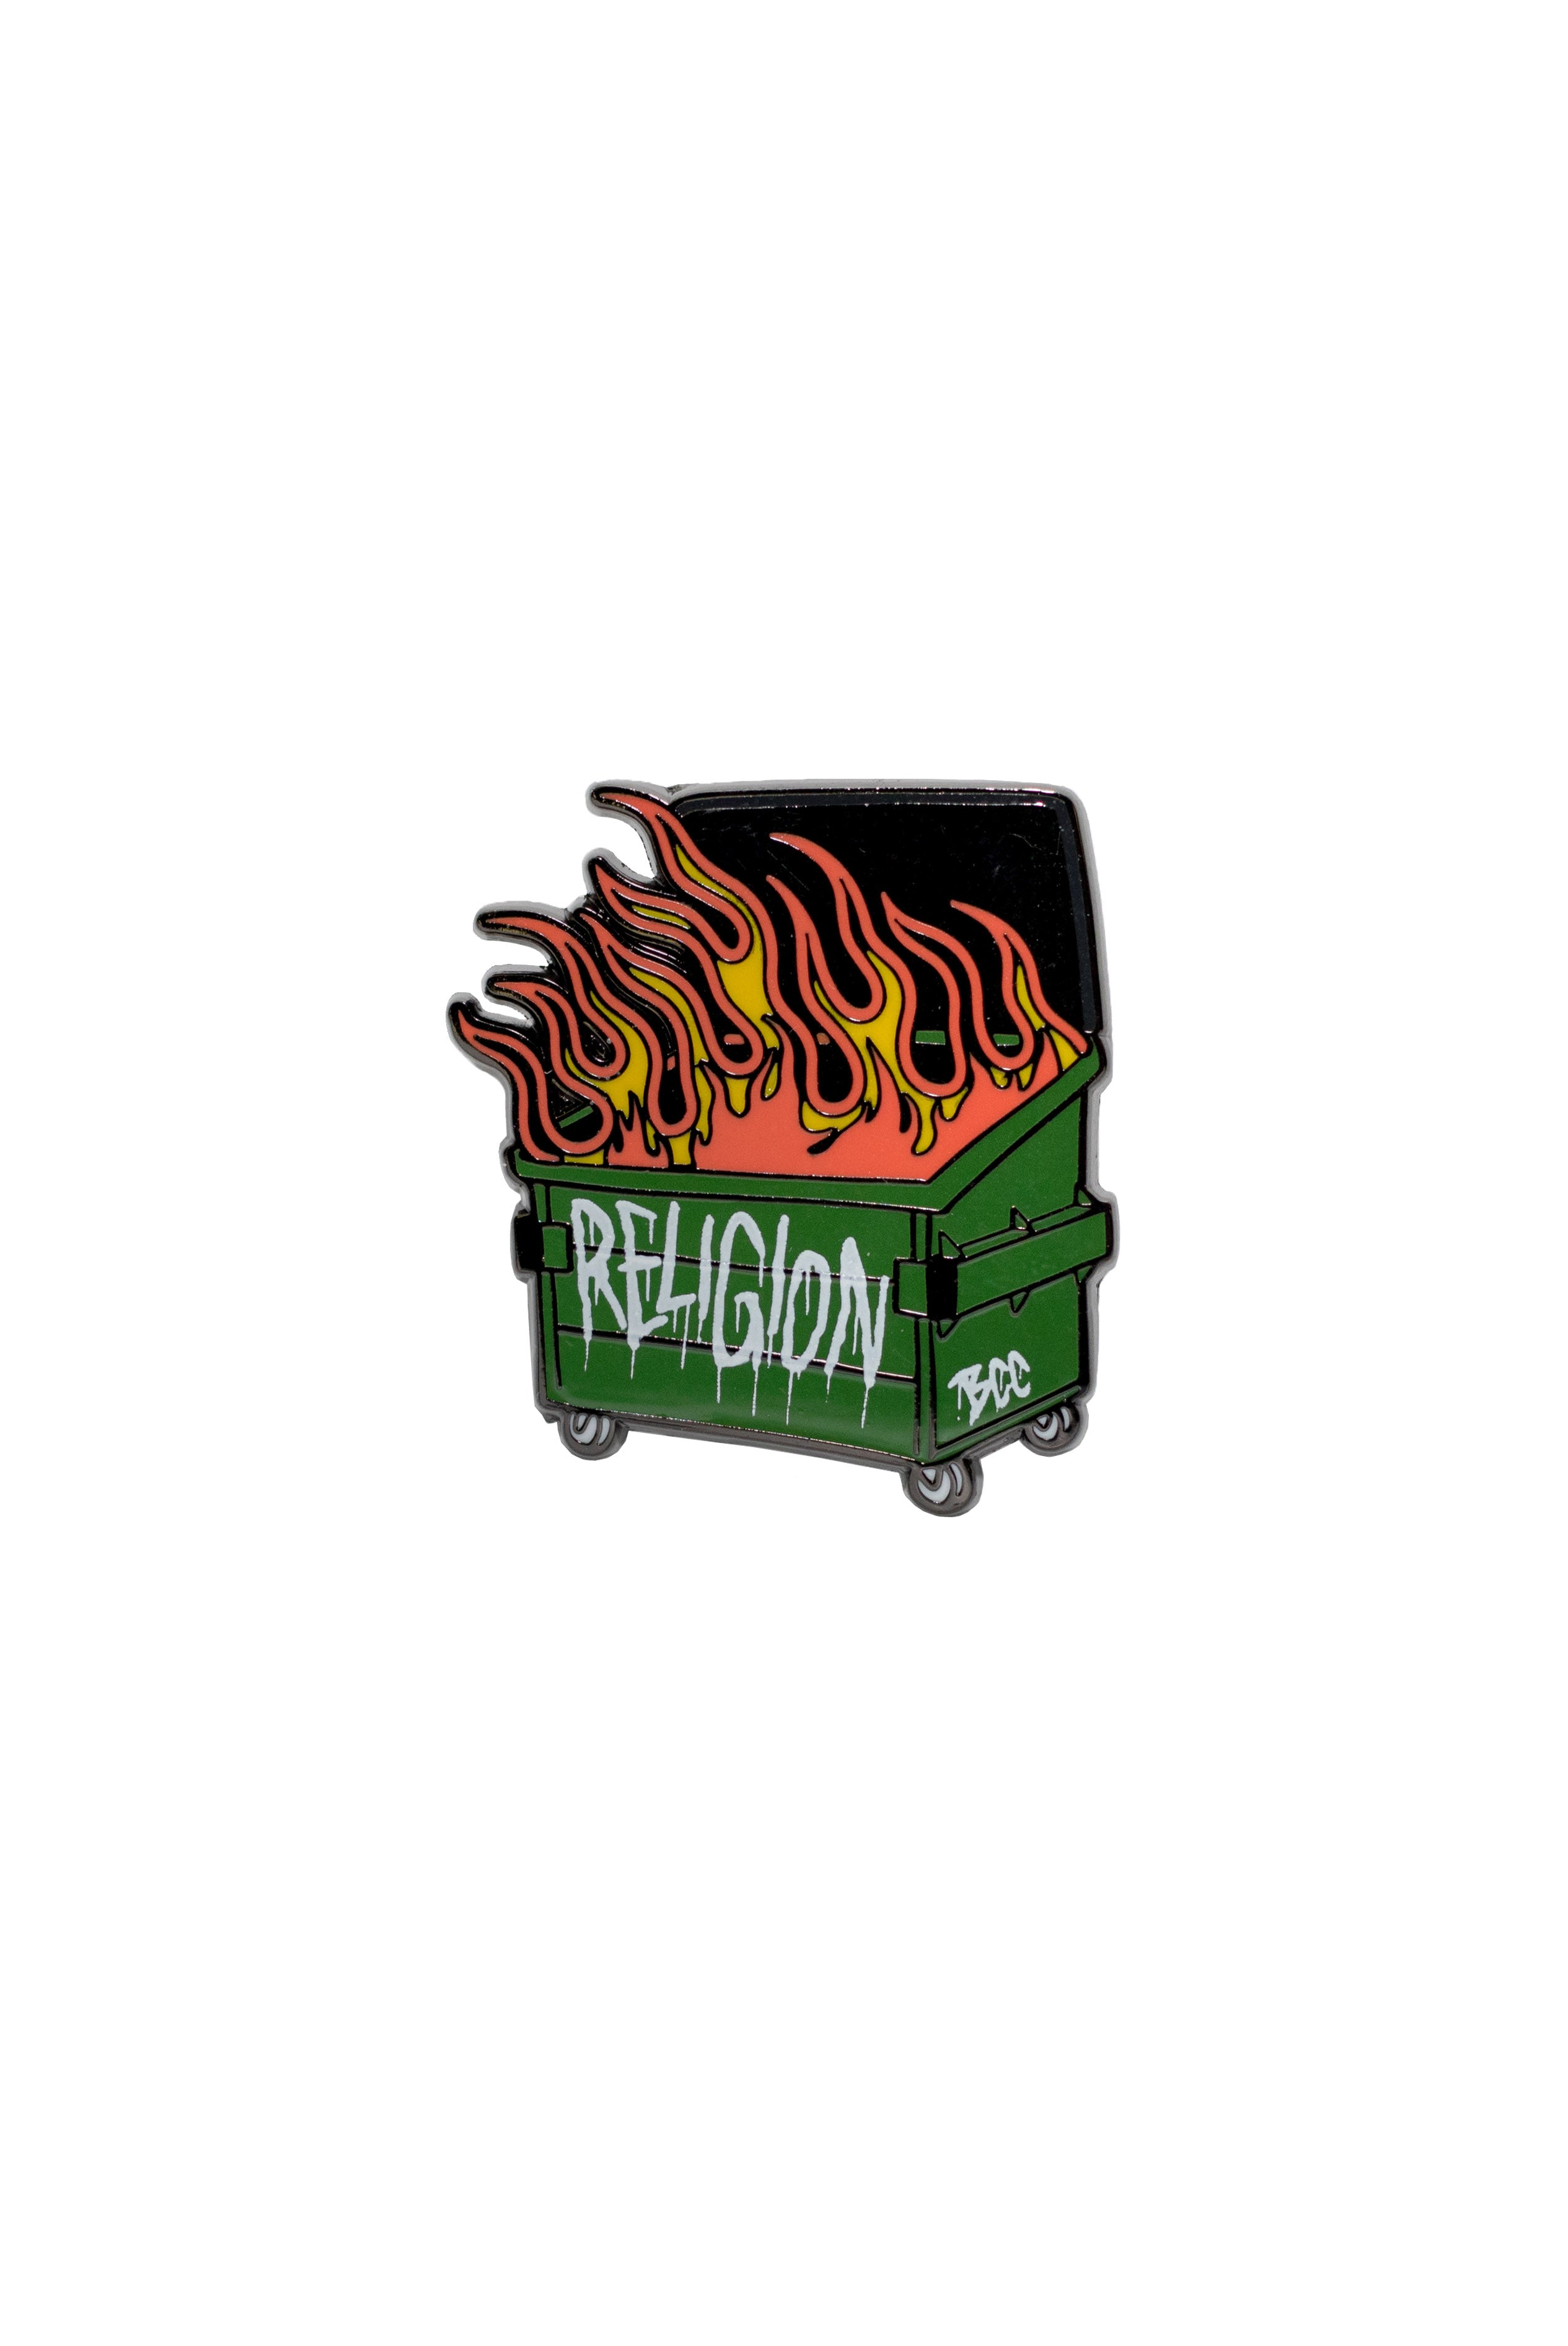 Dumpster Fire - Collectors Pin